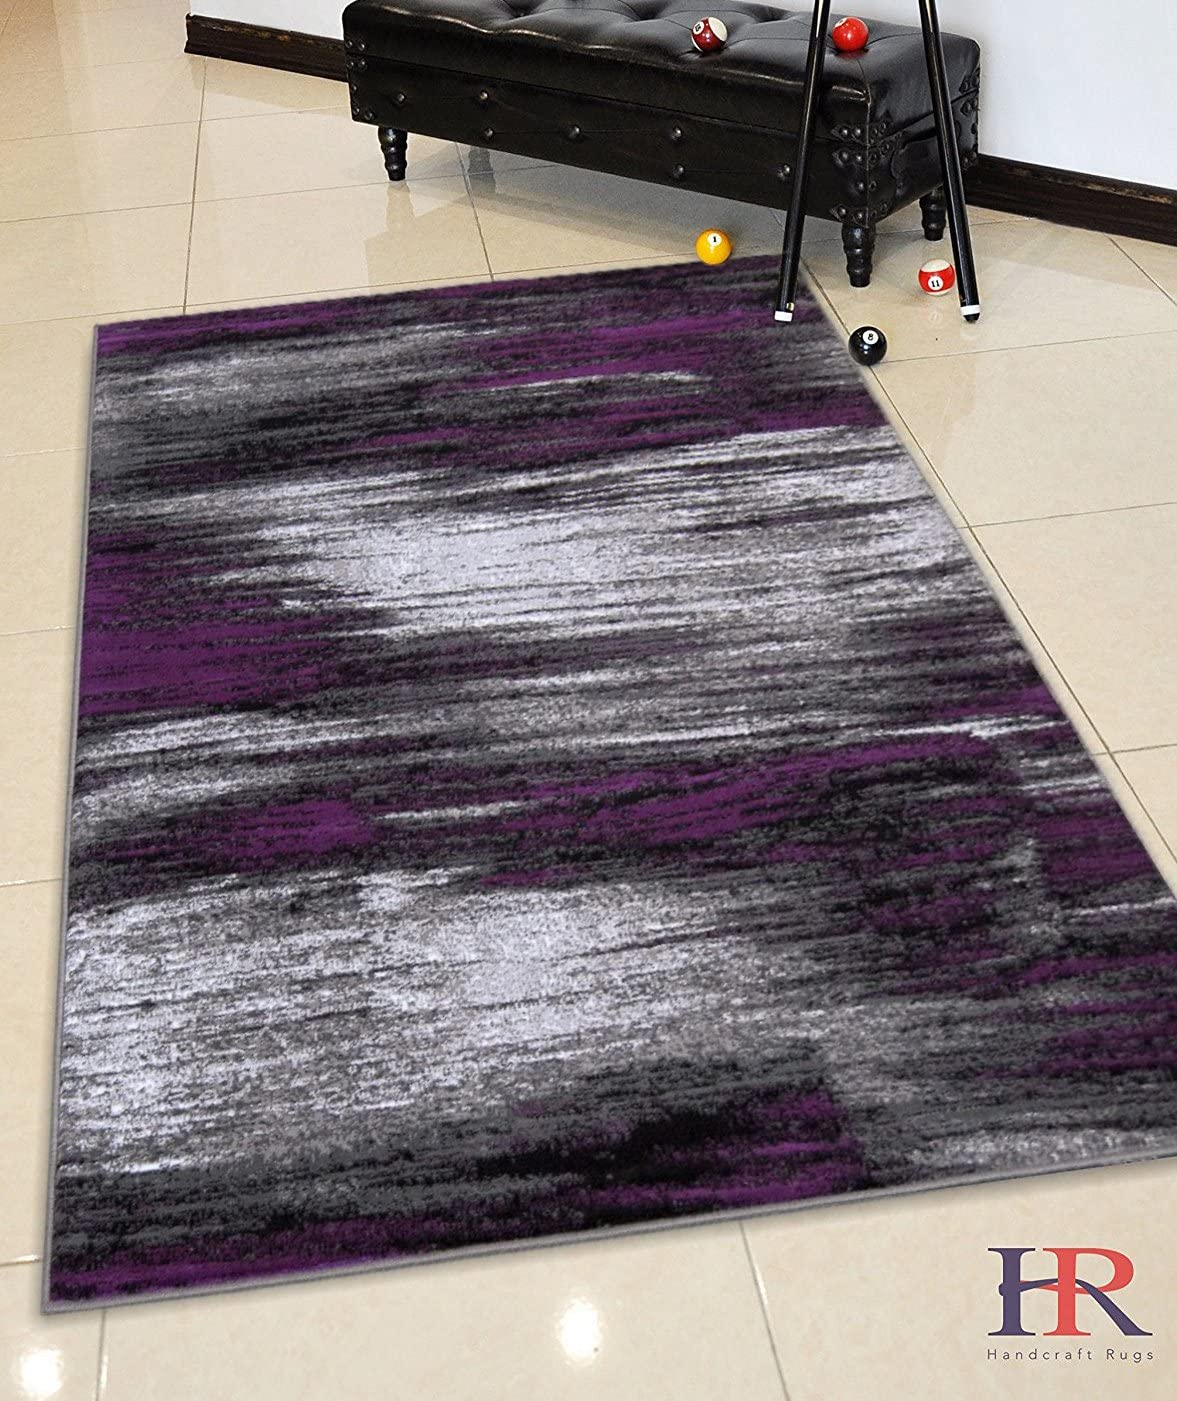 HR-Purple Grey Silver Black Abstract Contemporary Modern Design Mixed Brush Pattern Colors Area Rug 7 8 X10